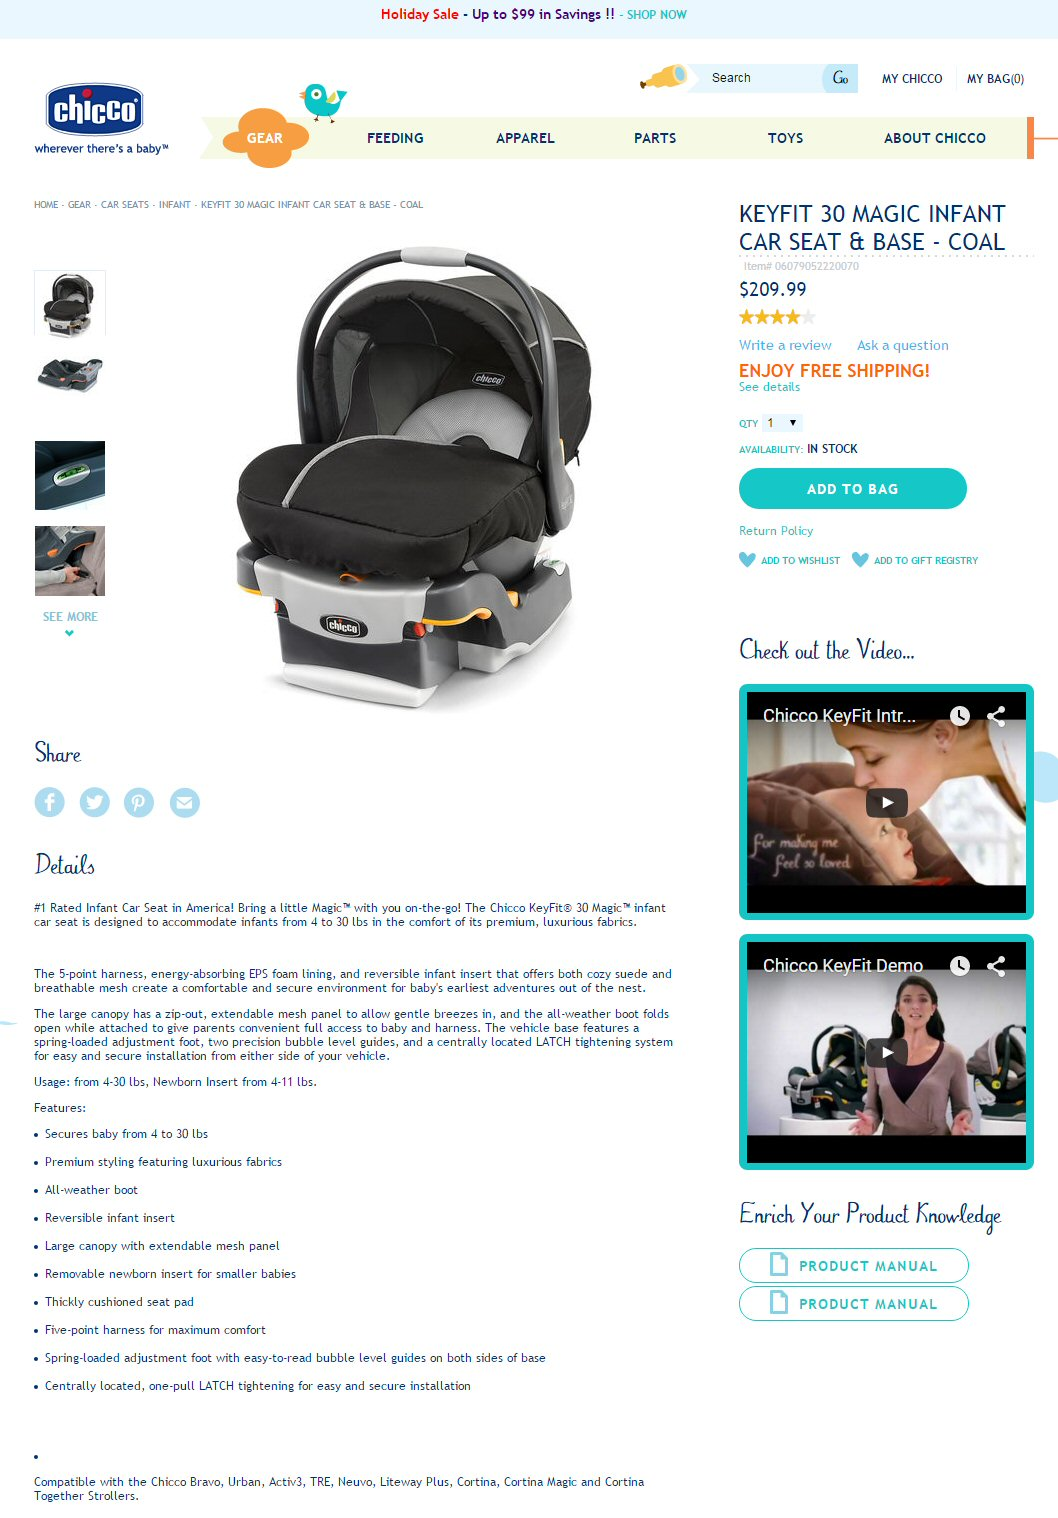 But The Manual Is Very Clear That It Supports A Baby 4 30 Lbs Inches Or Less